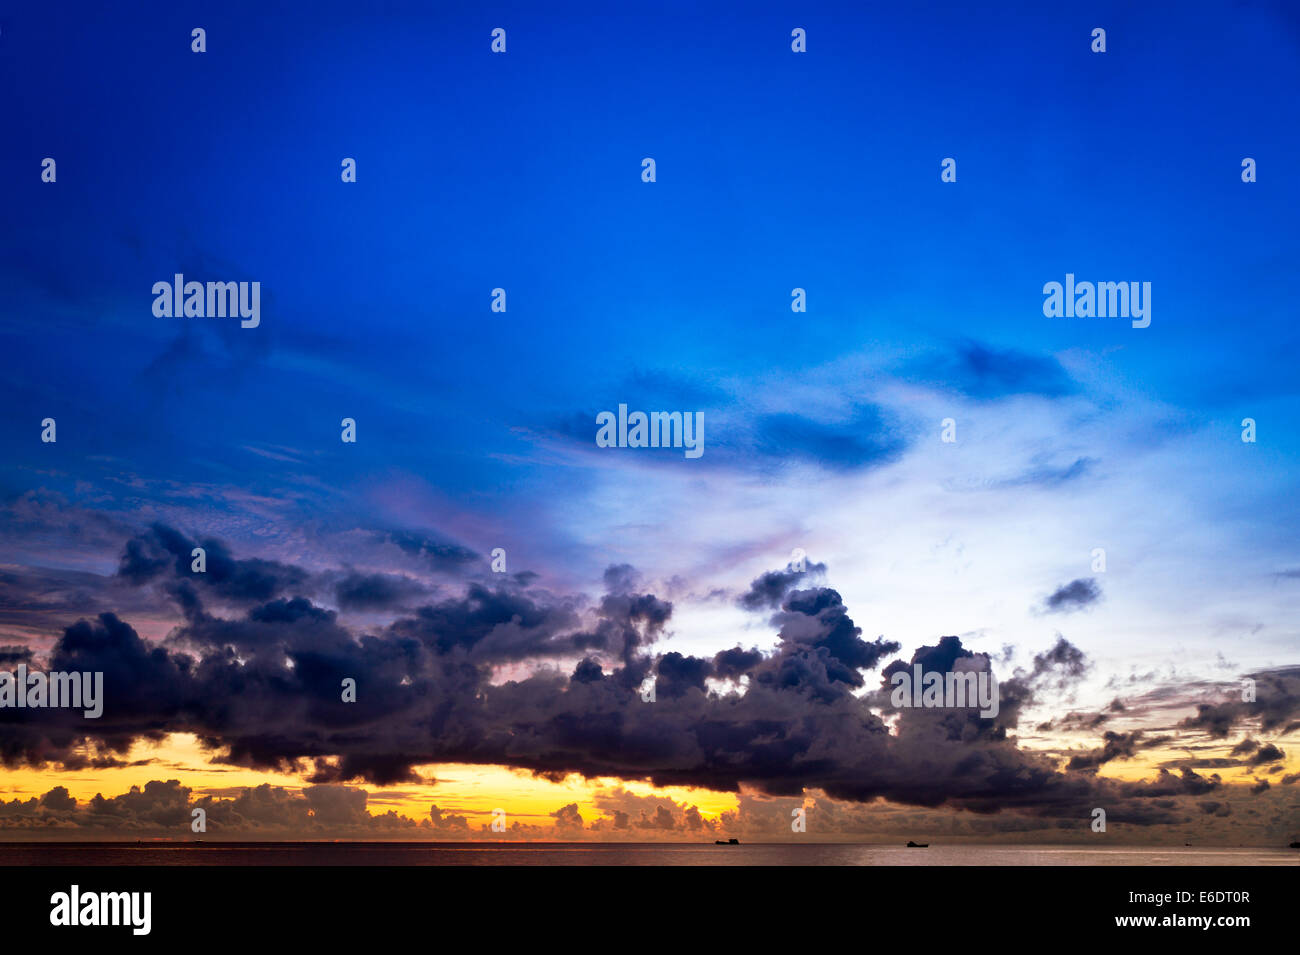 Sunset at South China Sea with big skies and ships, Phu Quoc, Vietnam - Stock Image